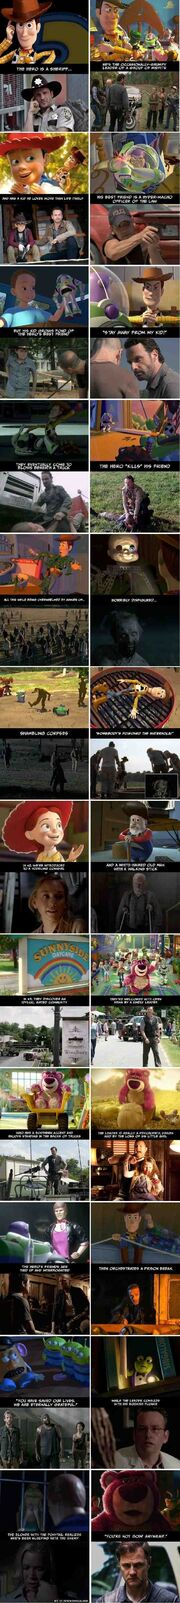 The Walking Dead Toy Story theory